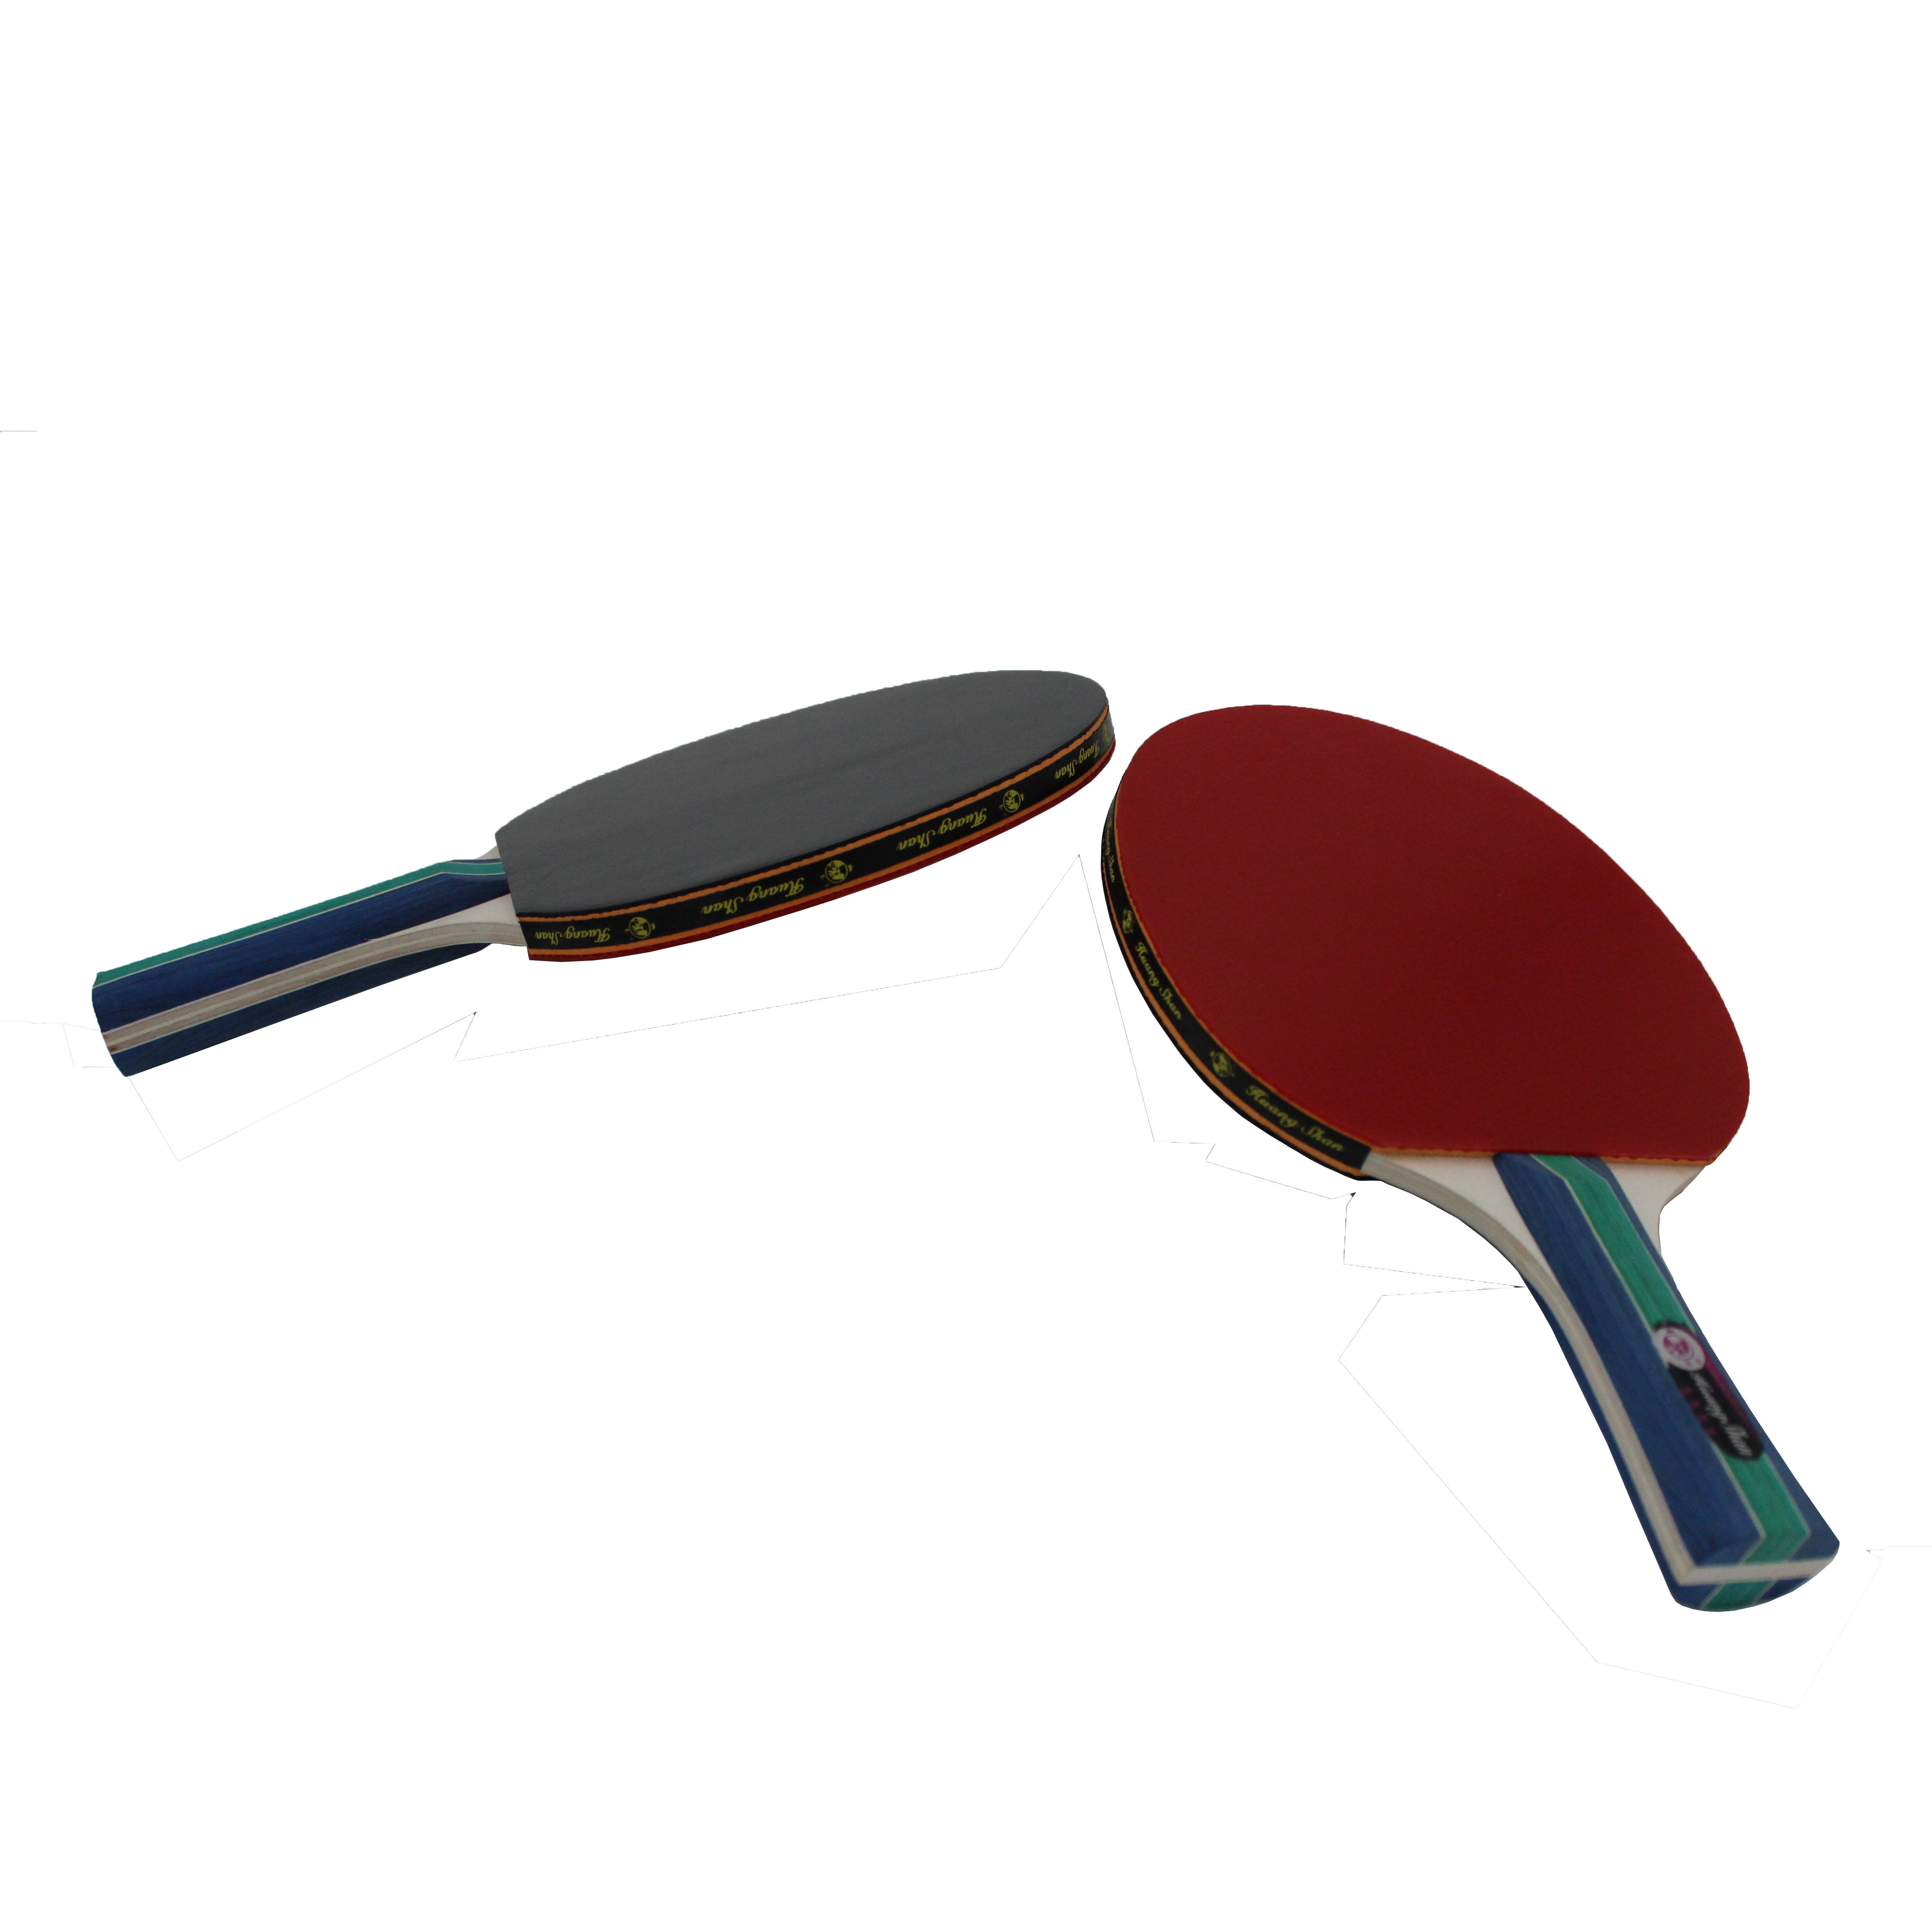 Table Tennis Easy To Use And Affordable Pingpong Table Tennis Racket 5 Star 4 Player Set